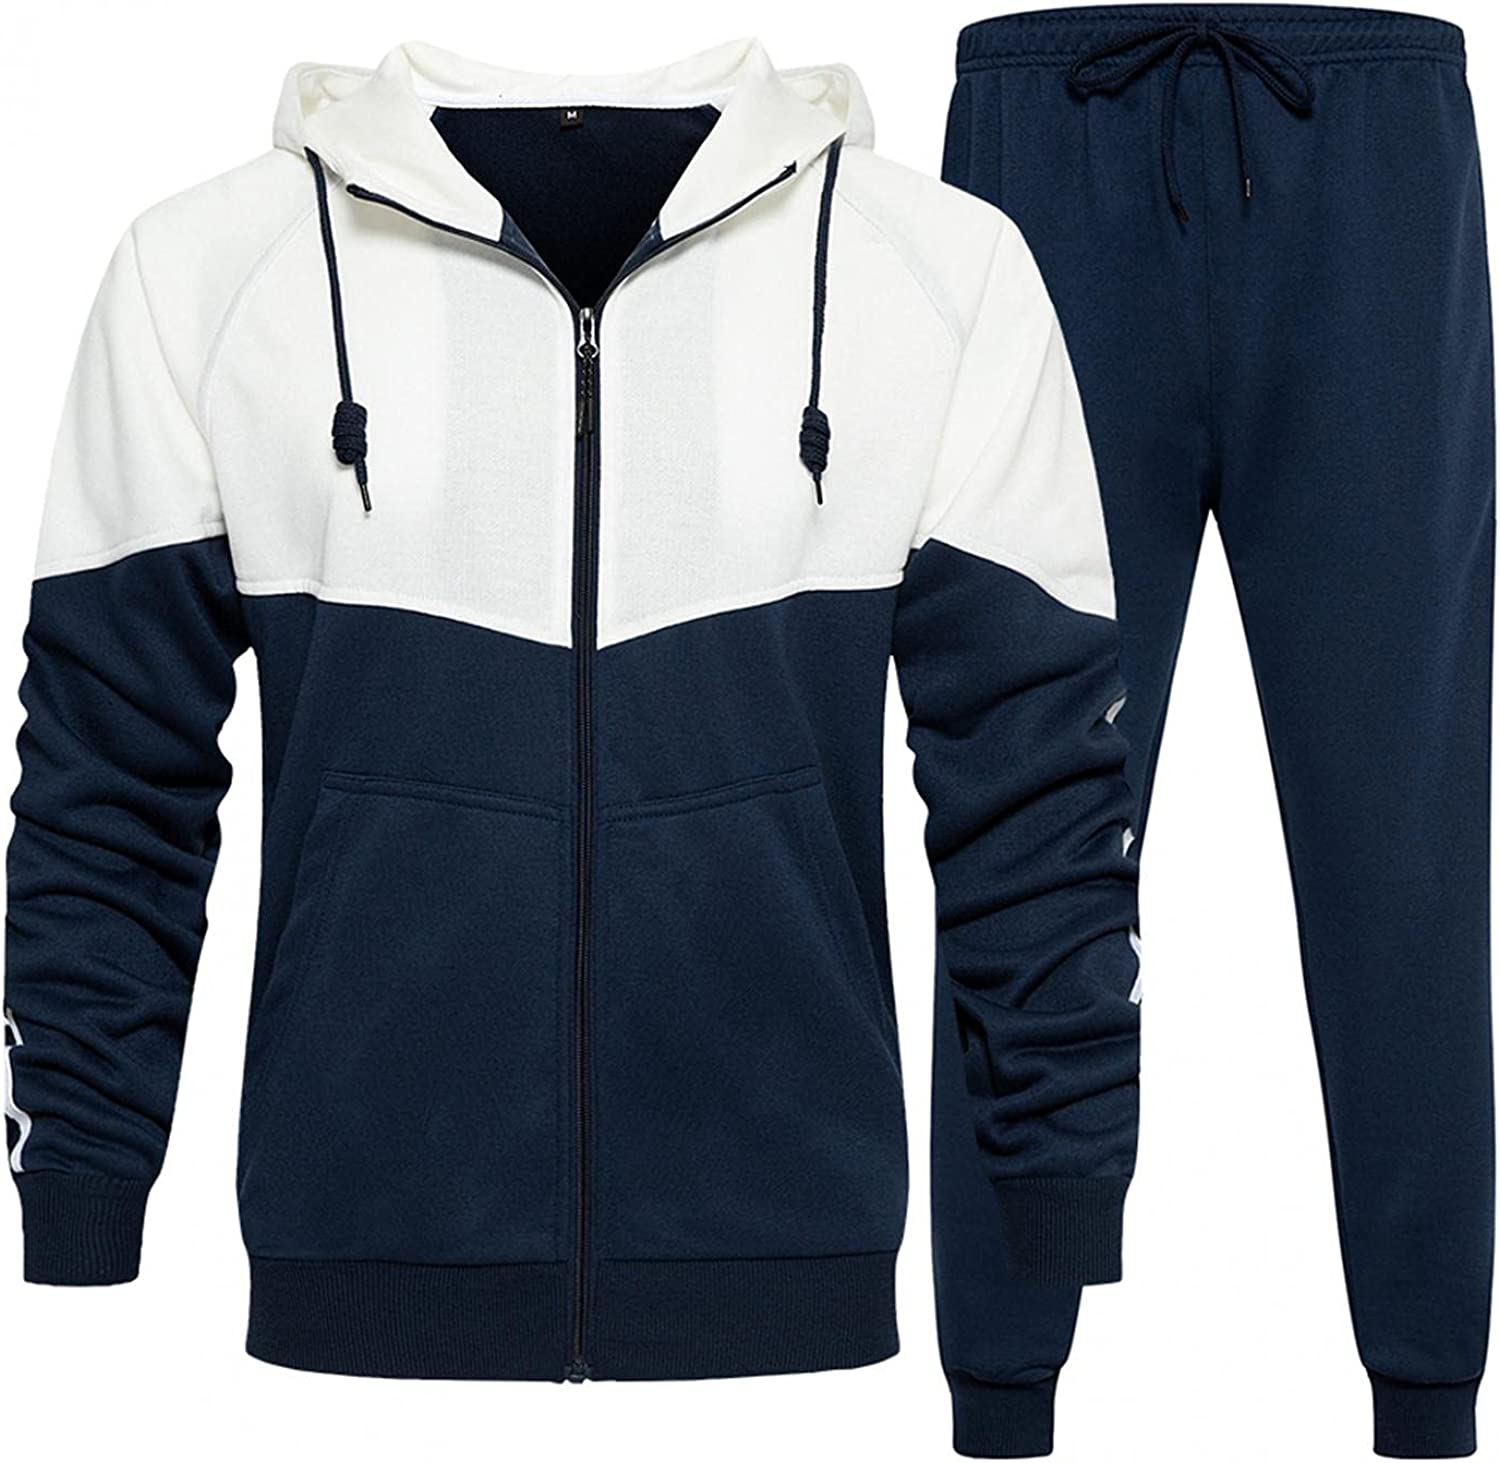 Men's 2 Piece Tracksuits Novelty Patchwork Hooded Coat & Long Pants Casual Running Jogging Athletic Sportwear Outfits